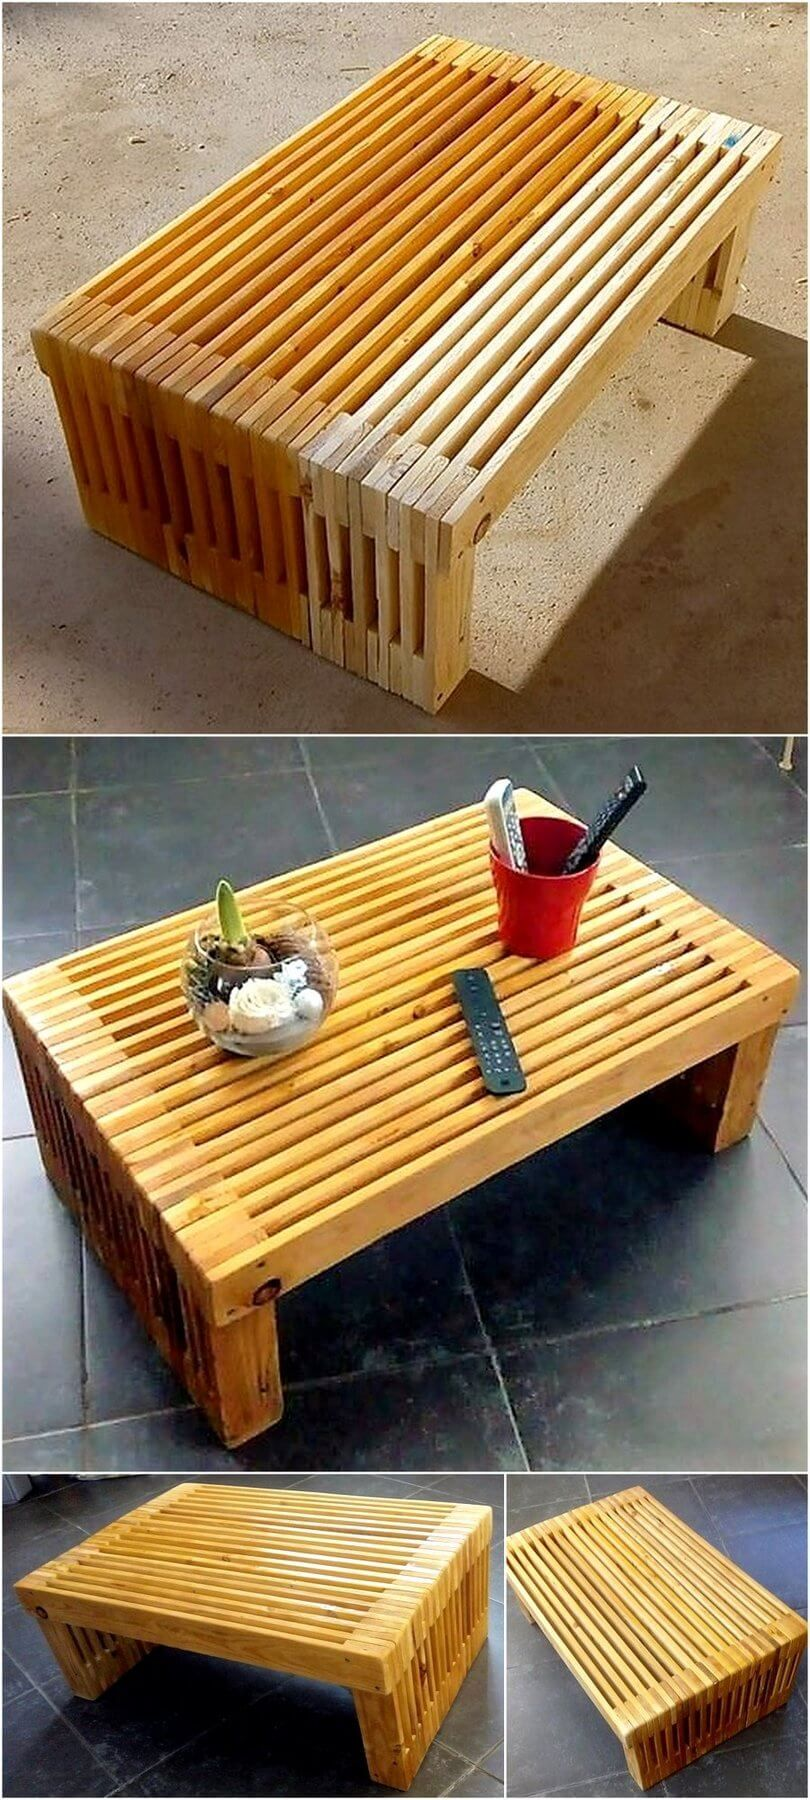 Ideas For Turning Old Wood Pallets Into Something Unique #oldpalletsforcrafting